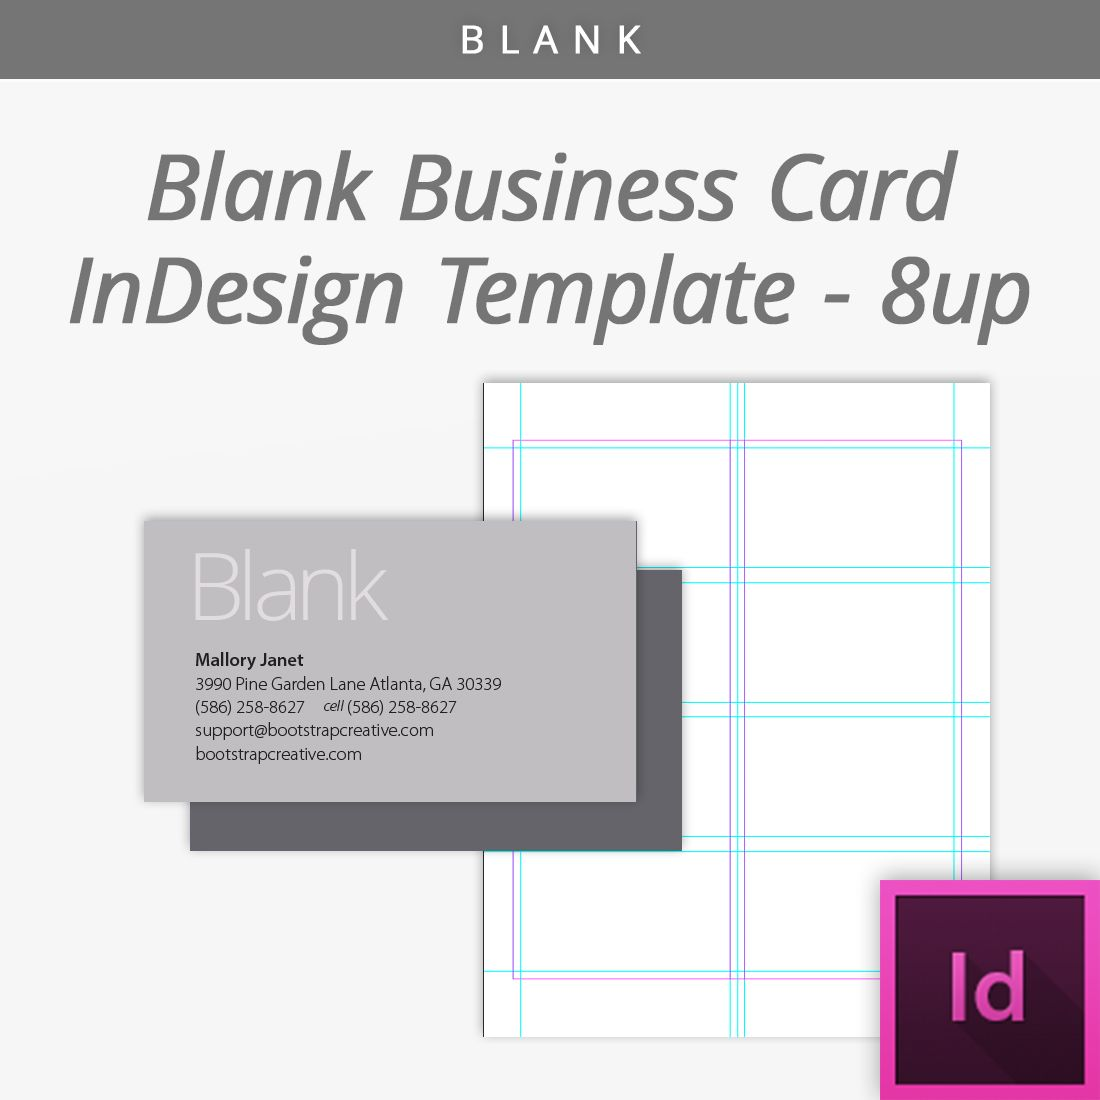 Blank indesign business card template 8 up free download blank indesign business card template 8 up free download designtemplate friedricerecipe